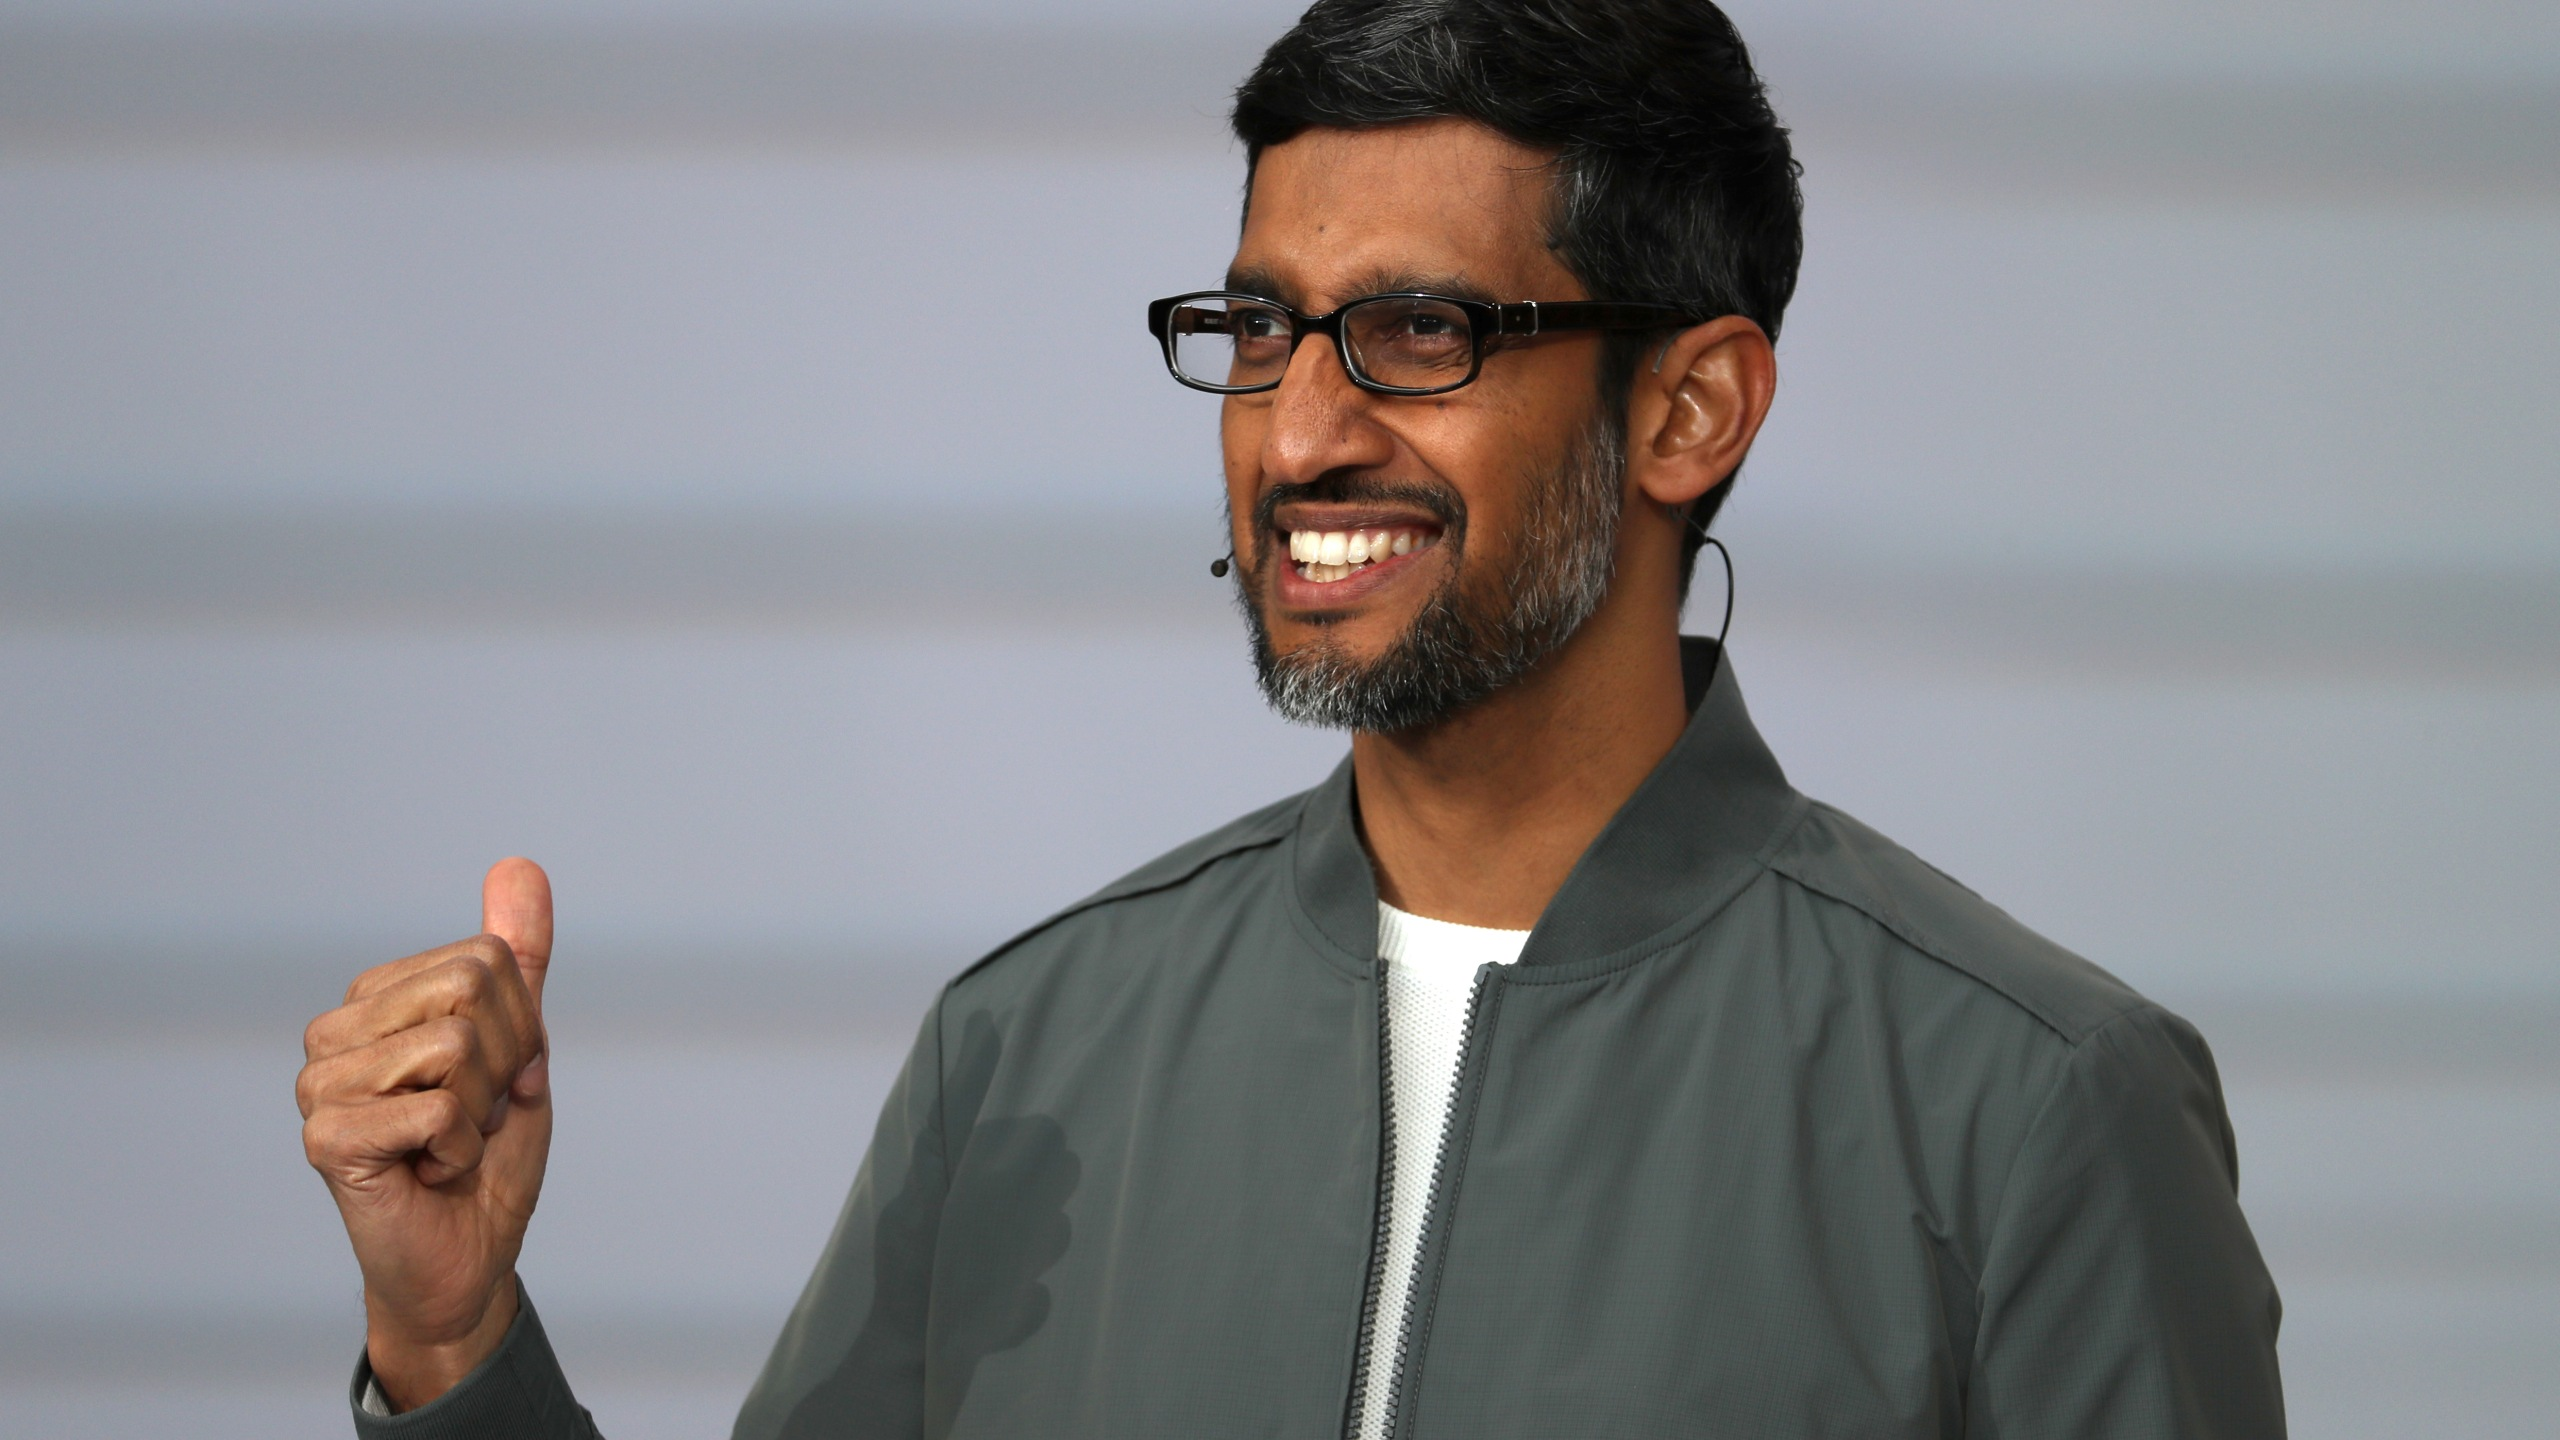 Google CEO Sundar Pichai delivers the keynote address at the 2019 Google I/O conference on May 7, 2019, in Mountain View, California. (Credit: Justin Sullivan/Getty Images)